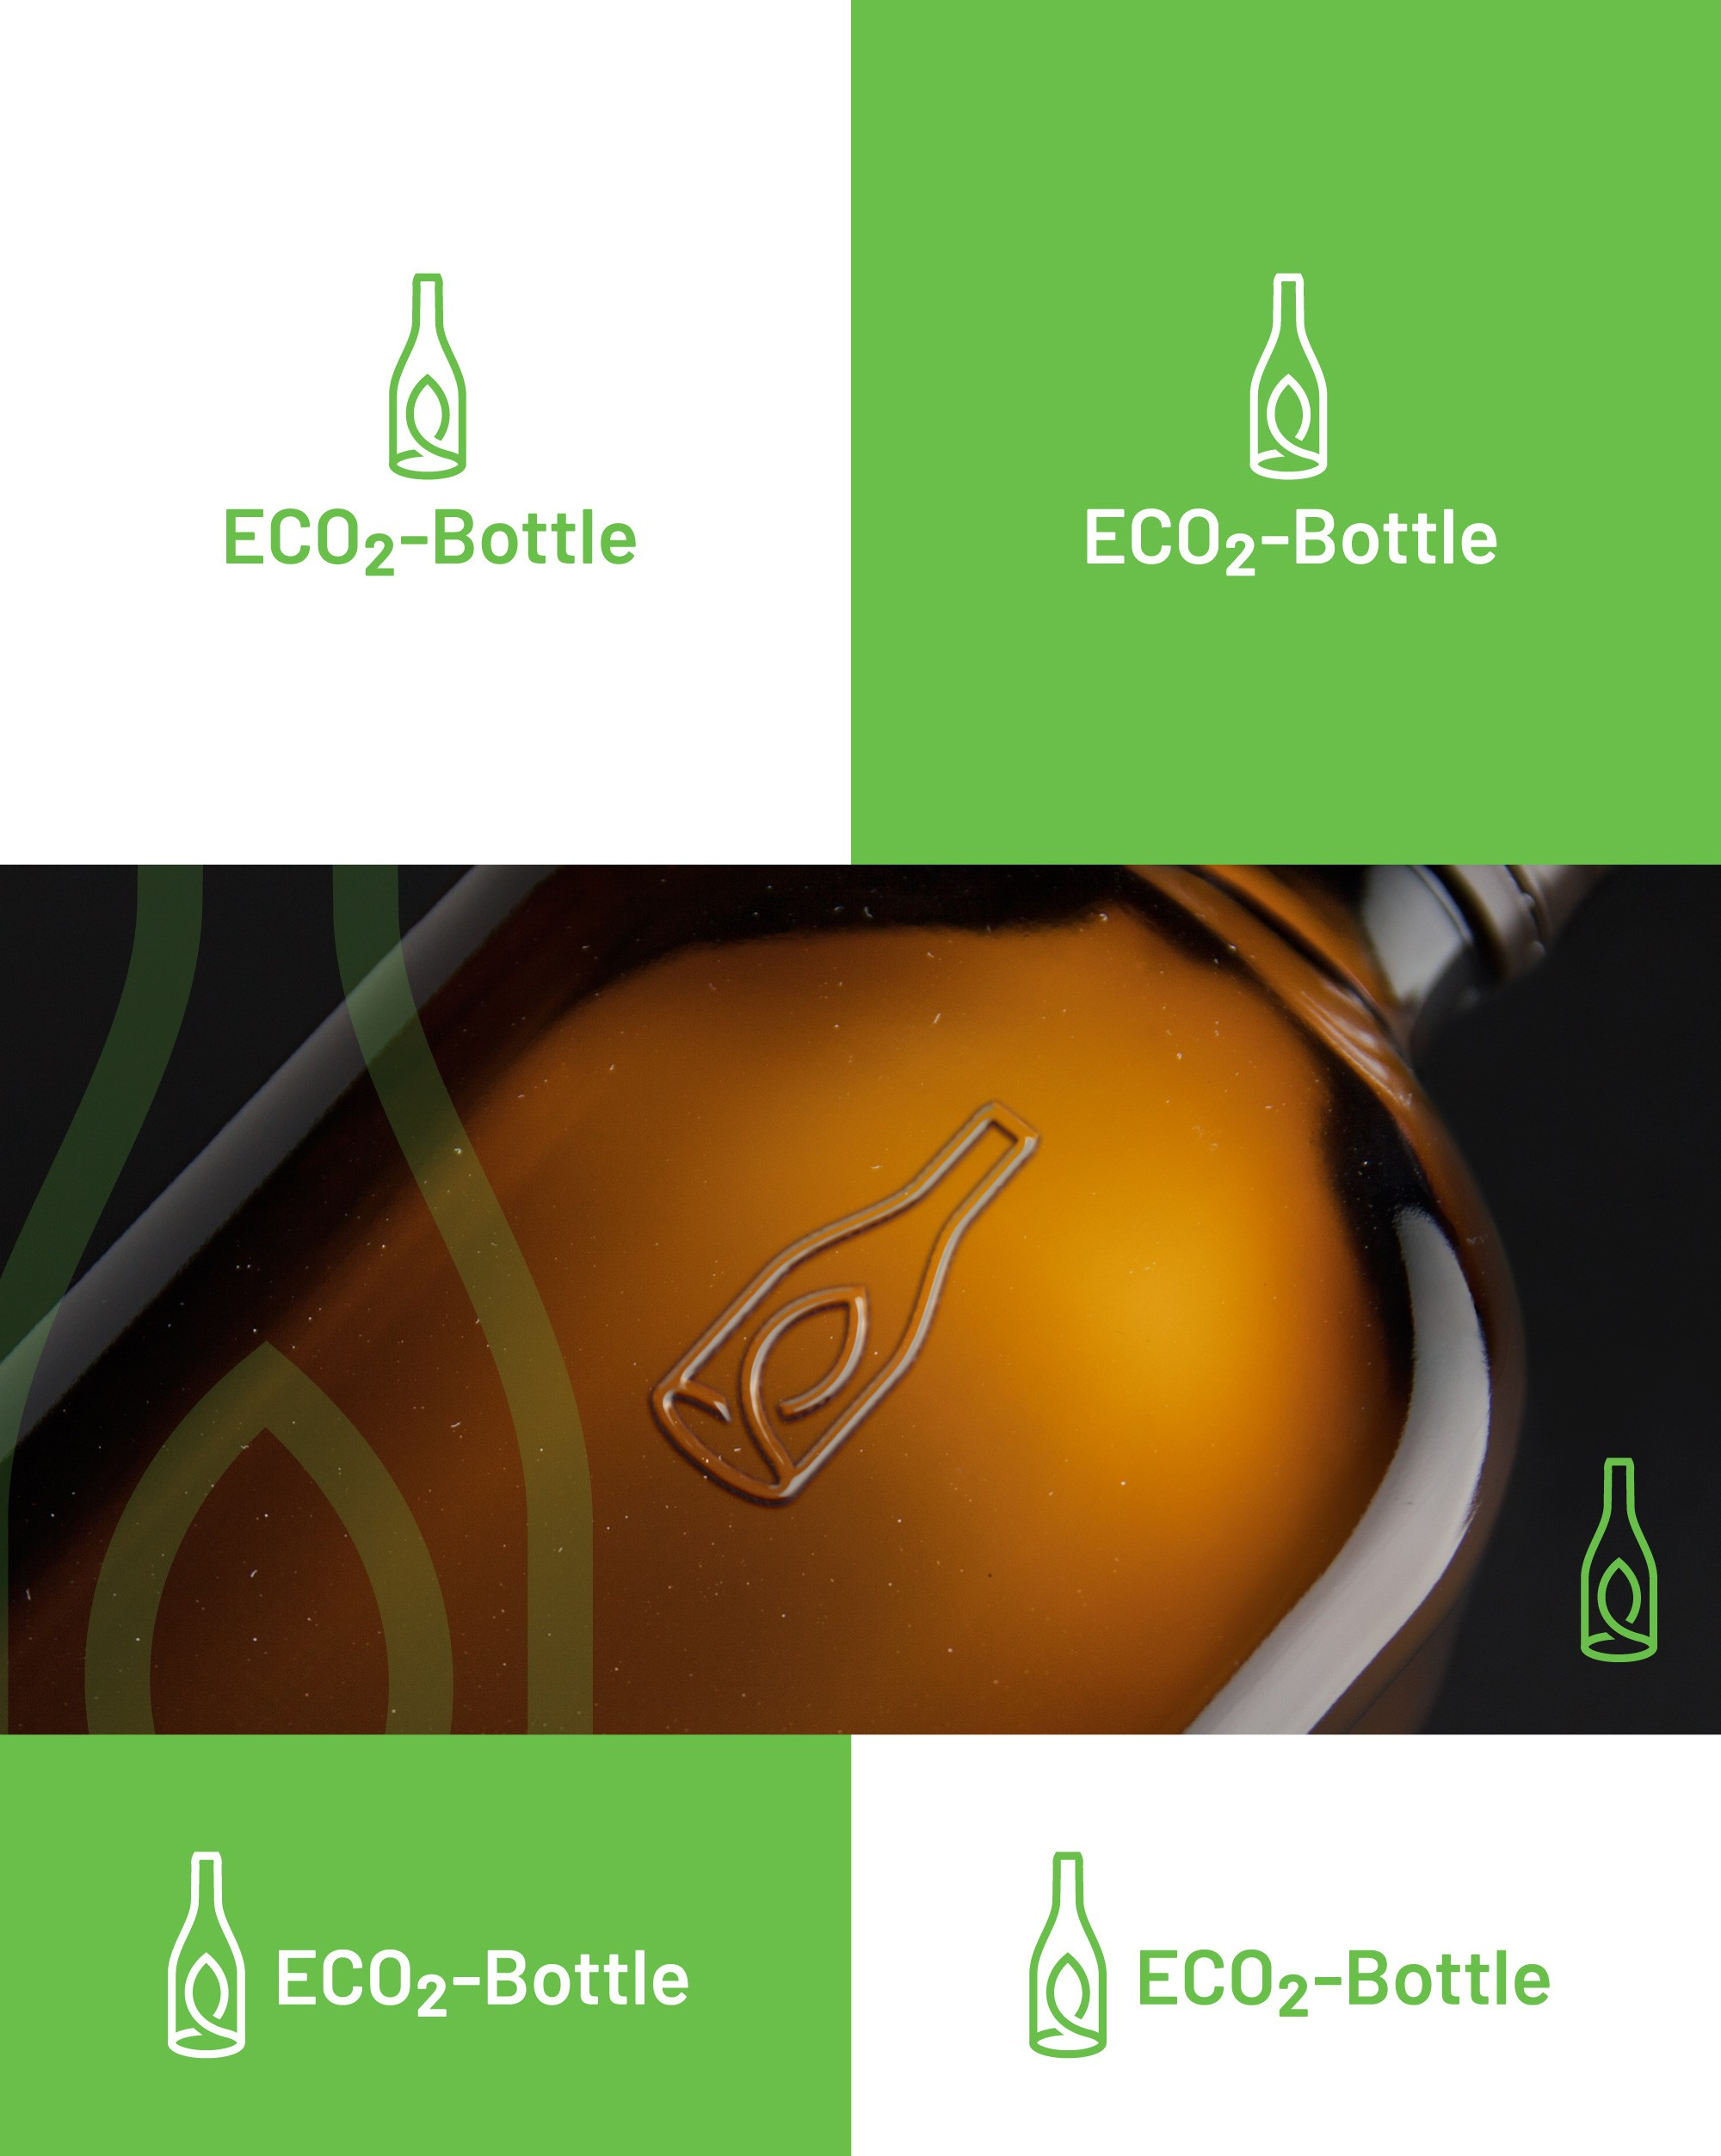 The greener glass - create a logo for the bottle of tomorrow